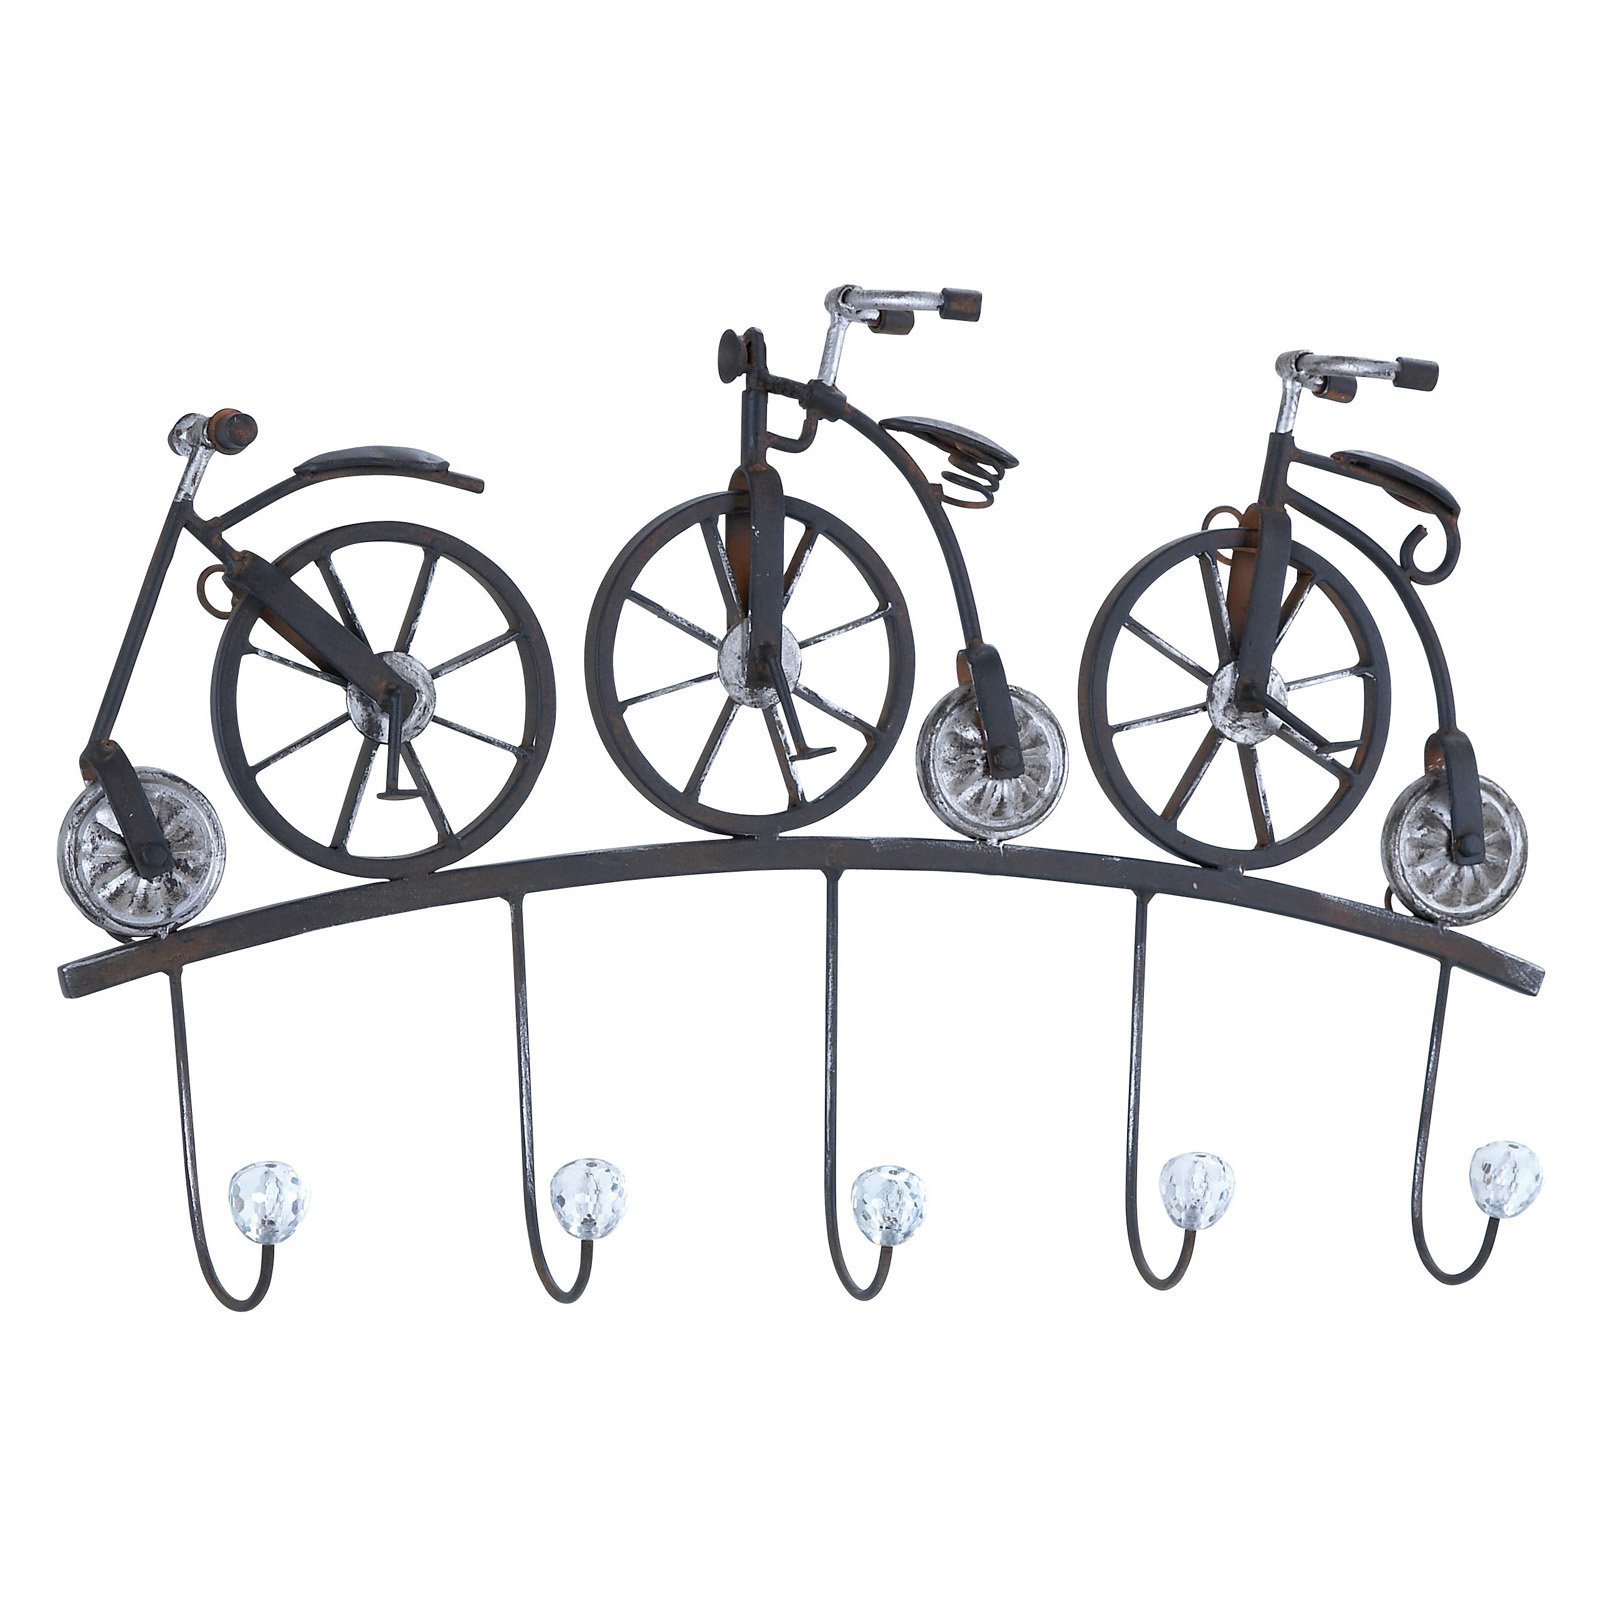 Woodland Imports Decorative Metal Bicycle Wall Sculpture